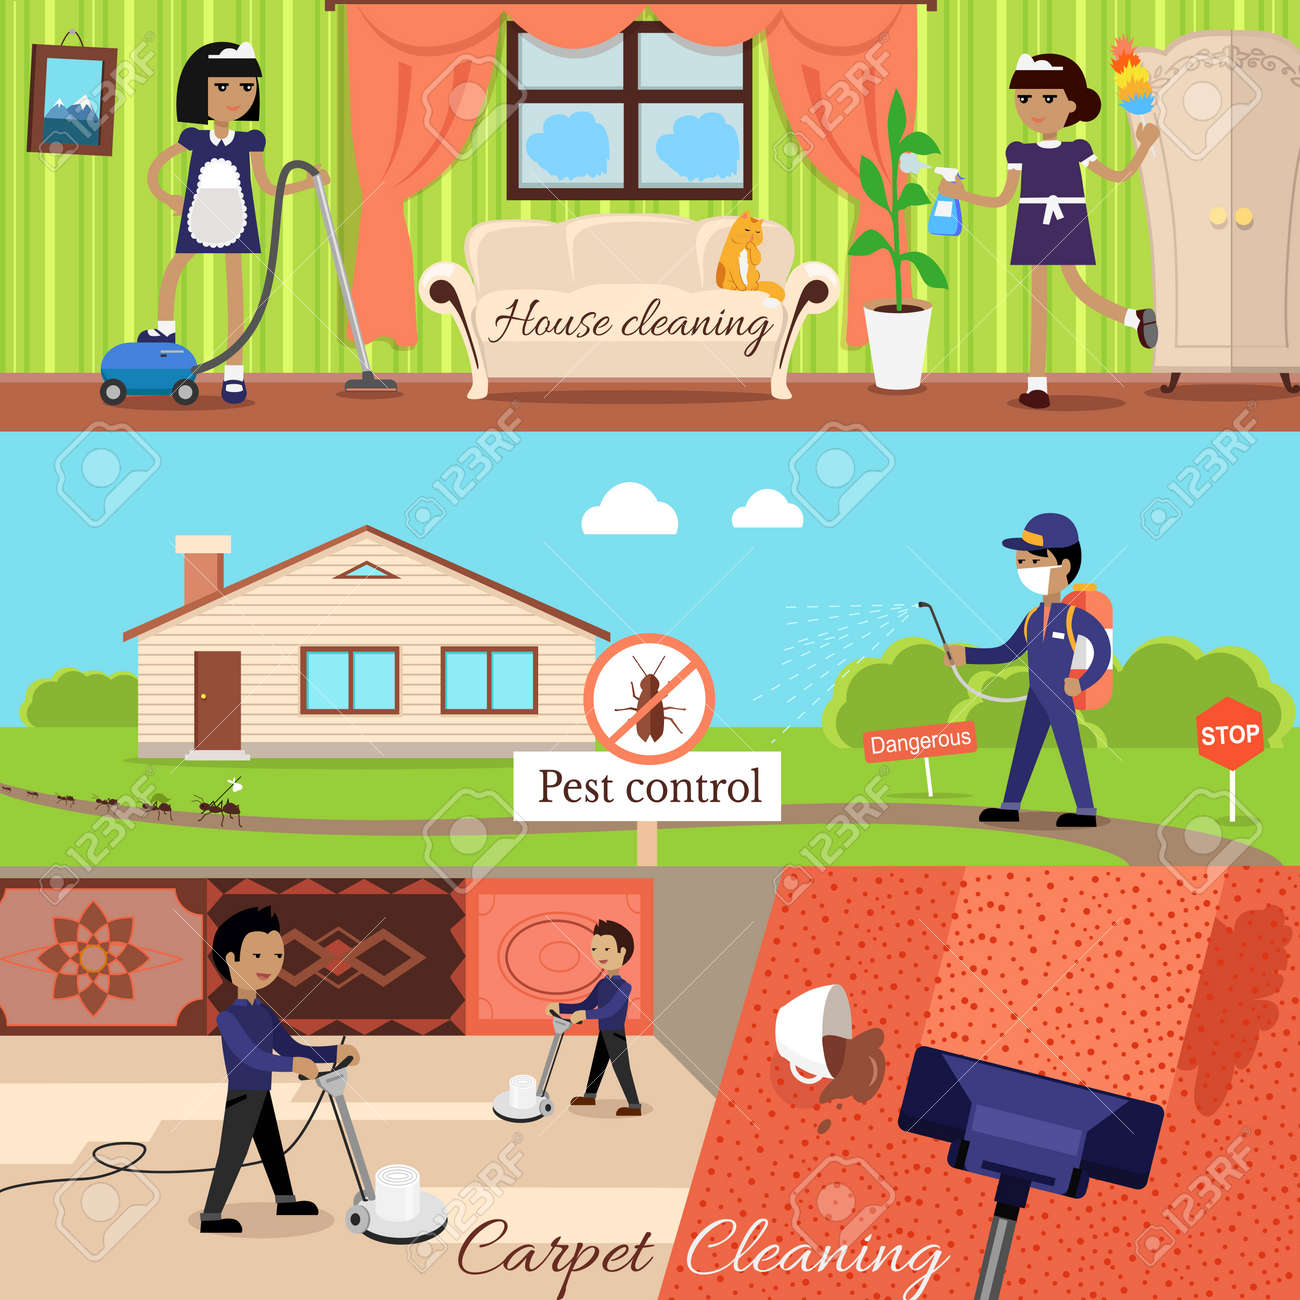 House cleaning and pest control and cleaning carpet, housework and cleaner service, domestic cleaning work, housekeeping wash and cleaning, washing and housecleaning, disinfectant pests illustration - 51856359